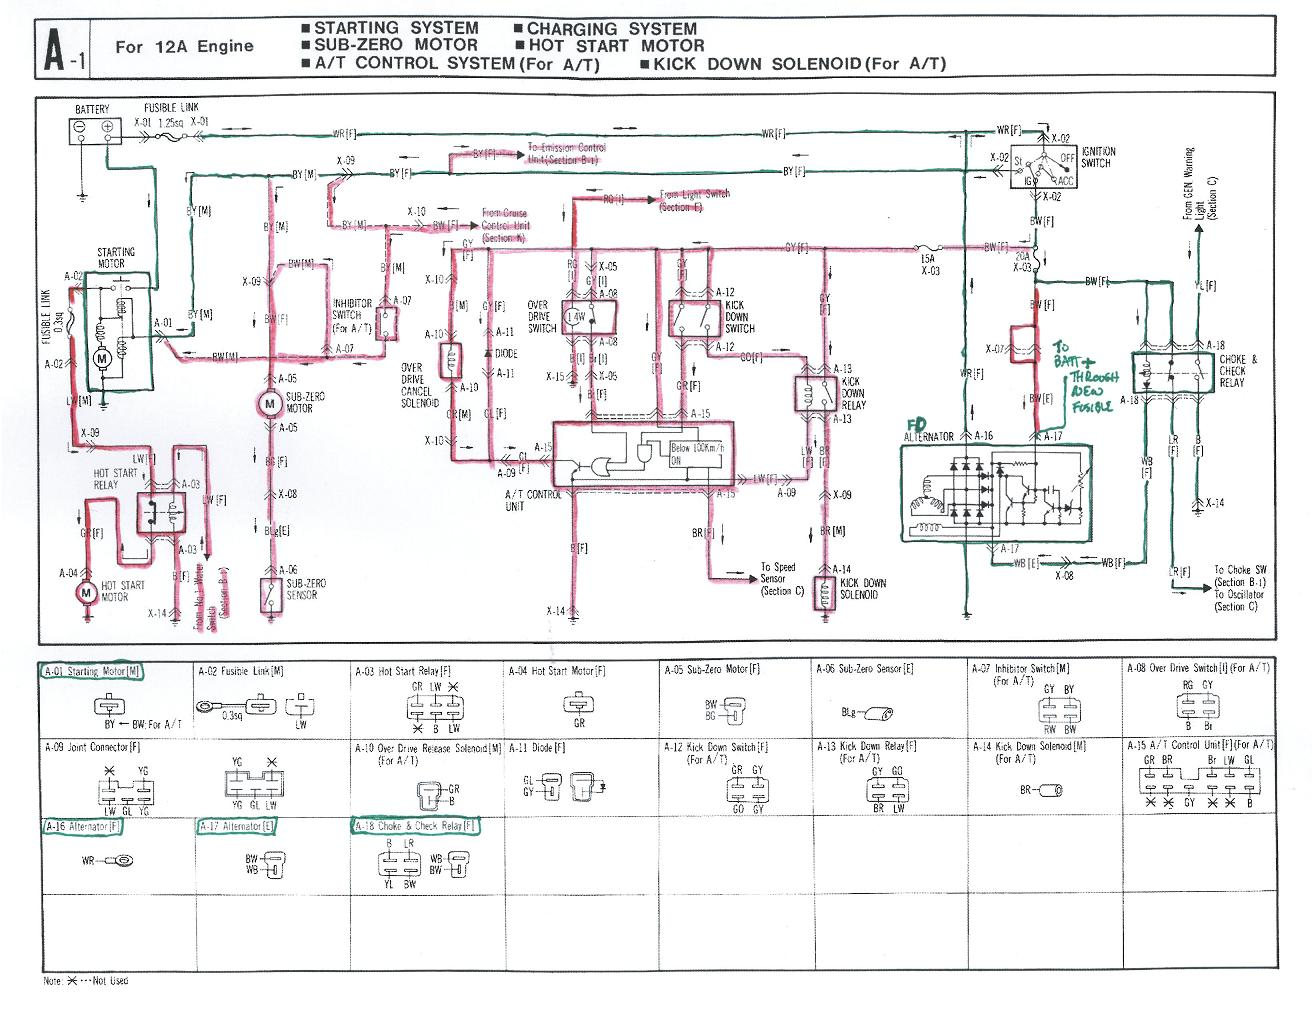 hight resolution of sterling lt9500 wiring diagrams wiring diagram third level sterling lt9500 wiring diagrams pto sterling lt9500 fan clutch wiring diagrams